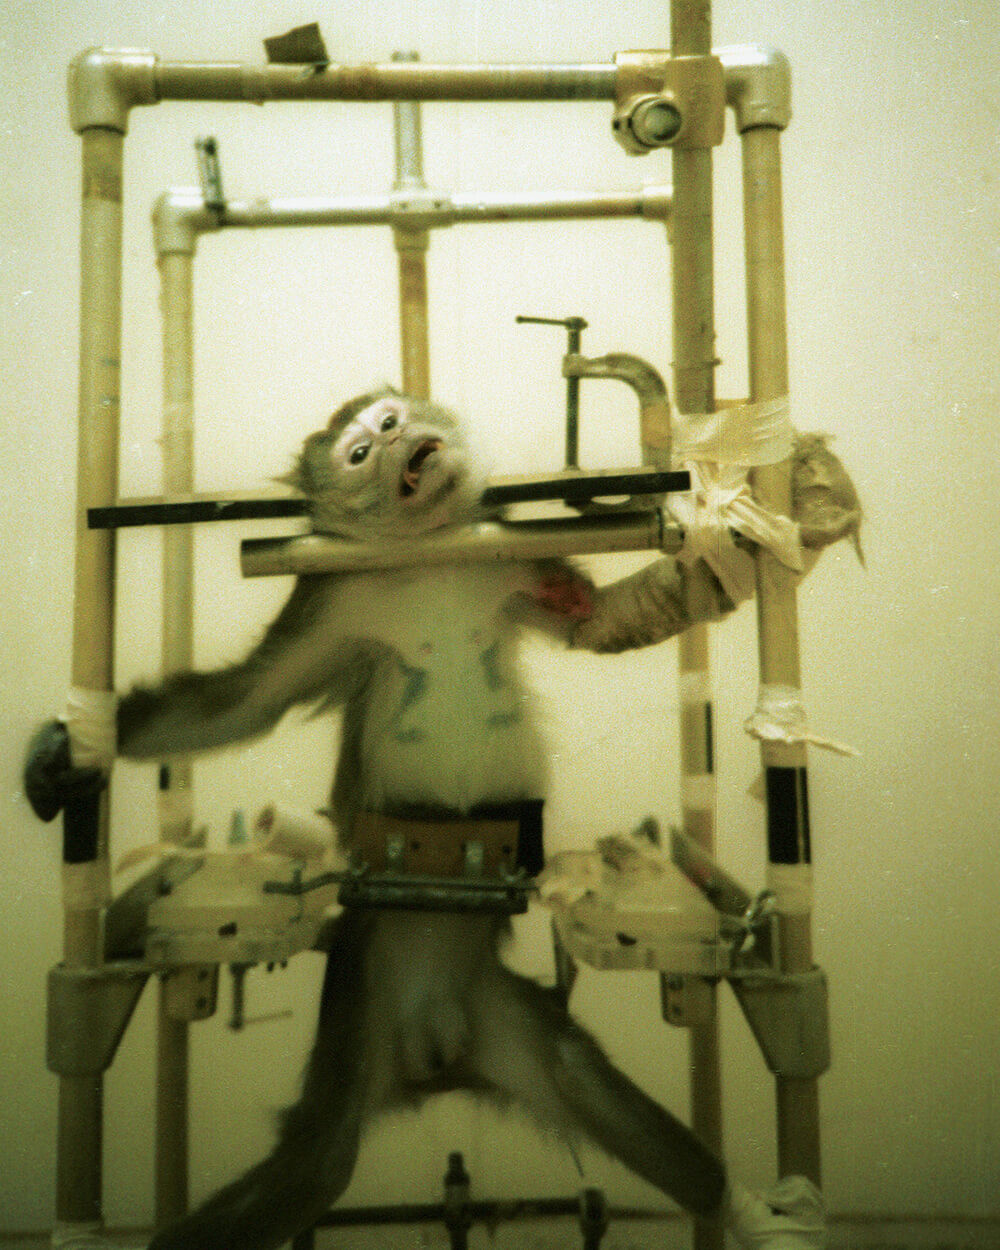 Silver Spring Monkey in restraint in lab ~ 600 Million Dogs Alex Pacheco